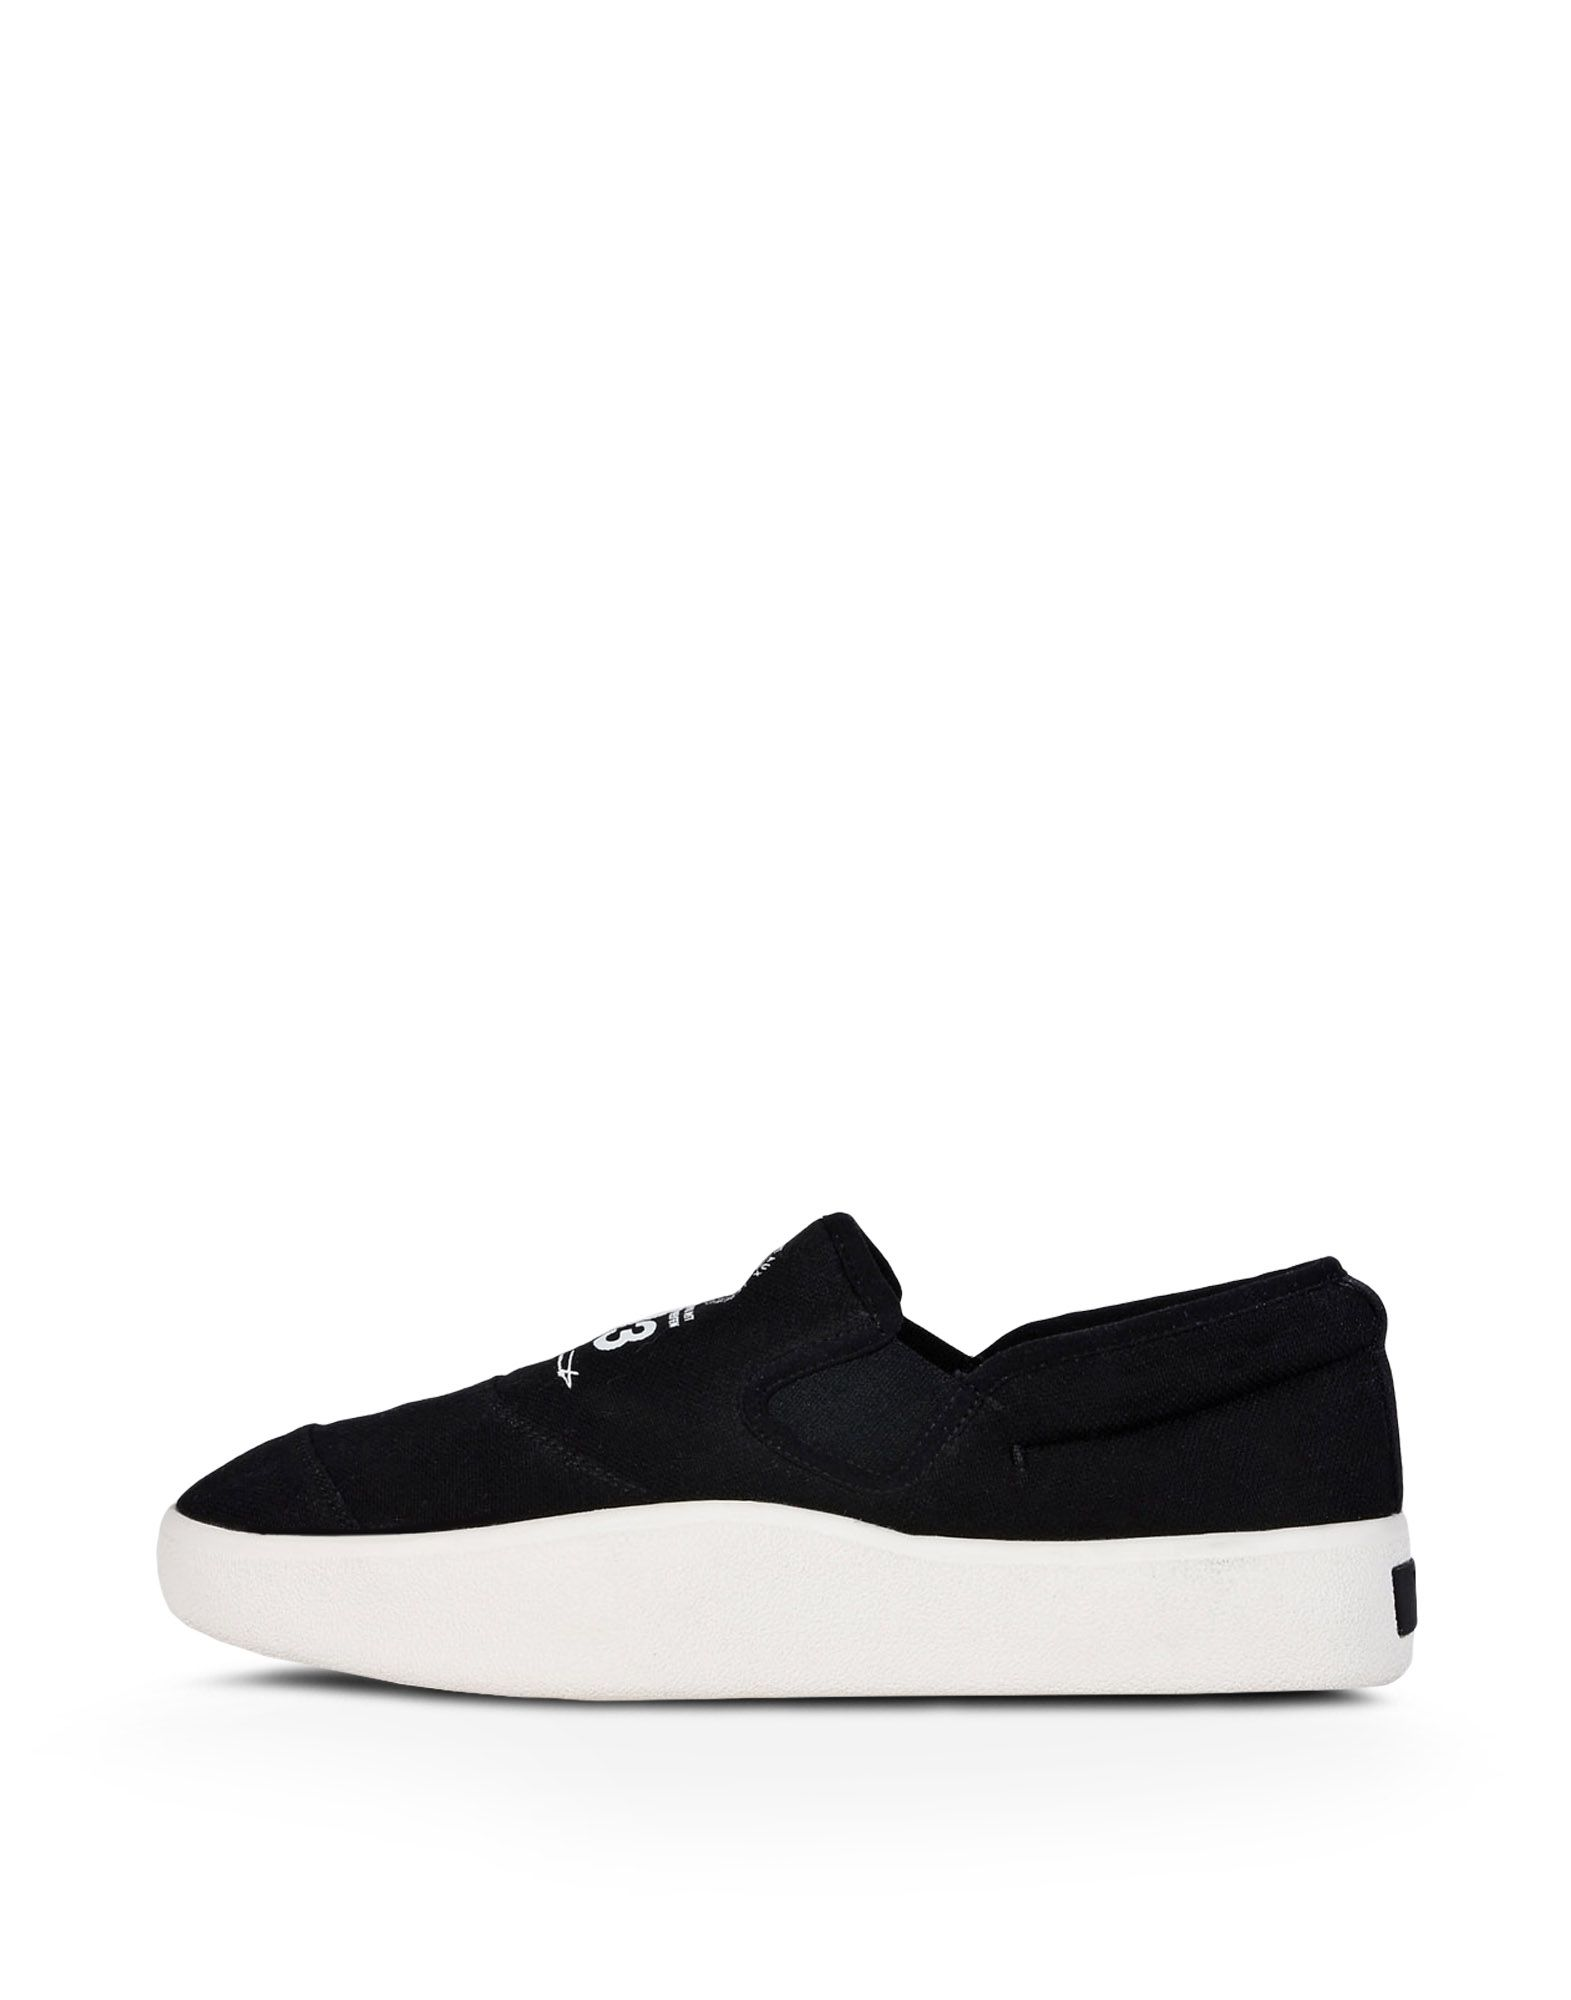 Y-3 TANGUTSU Off / Off /Black